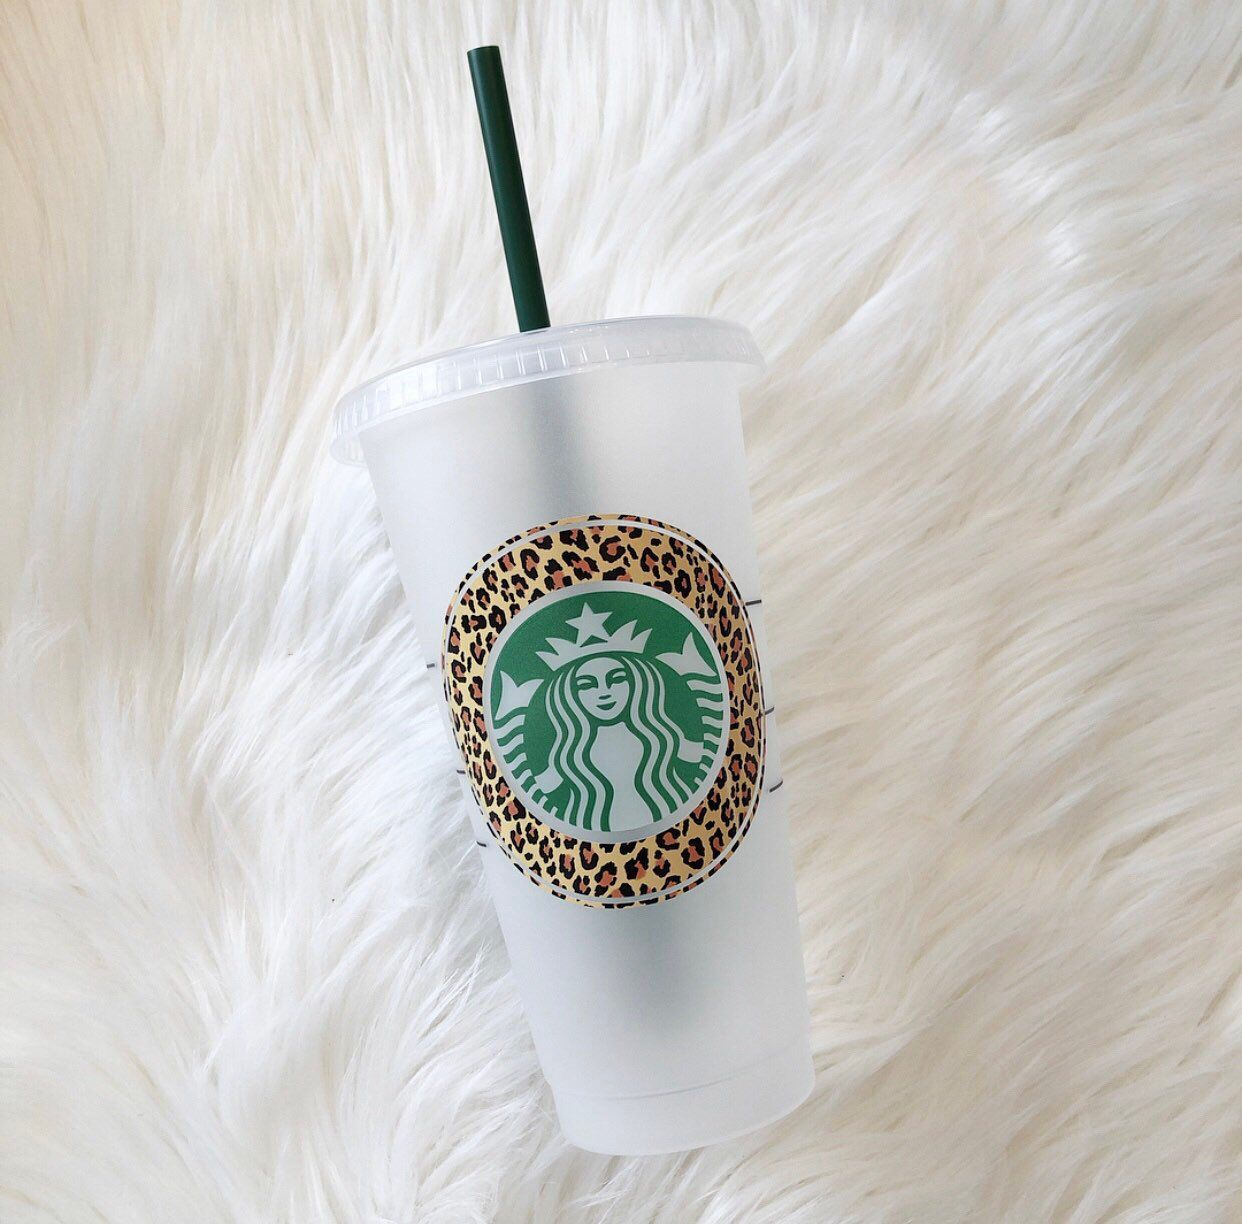 Excited To Share This Item From My Etsy Shop Leopard Print Starbucks Reusable Cold Cup Starbucks Tu Starbucks Coffee Cup Starbucks Cups Custom Starbucks Cup